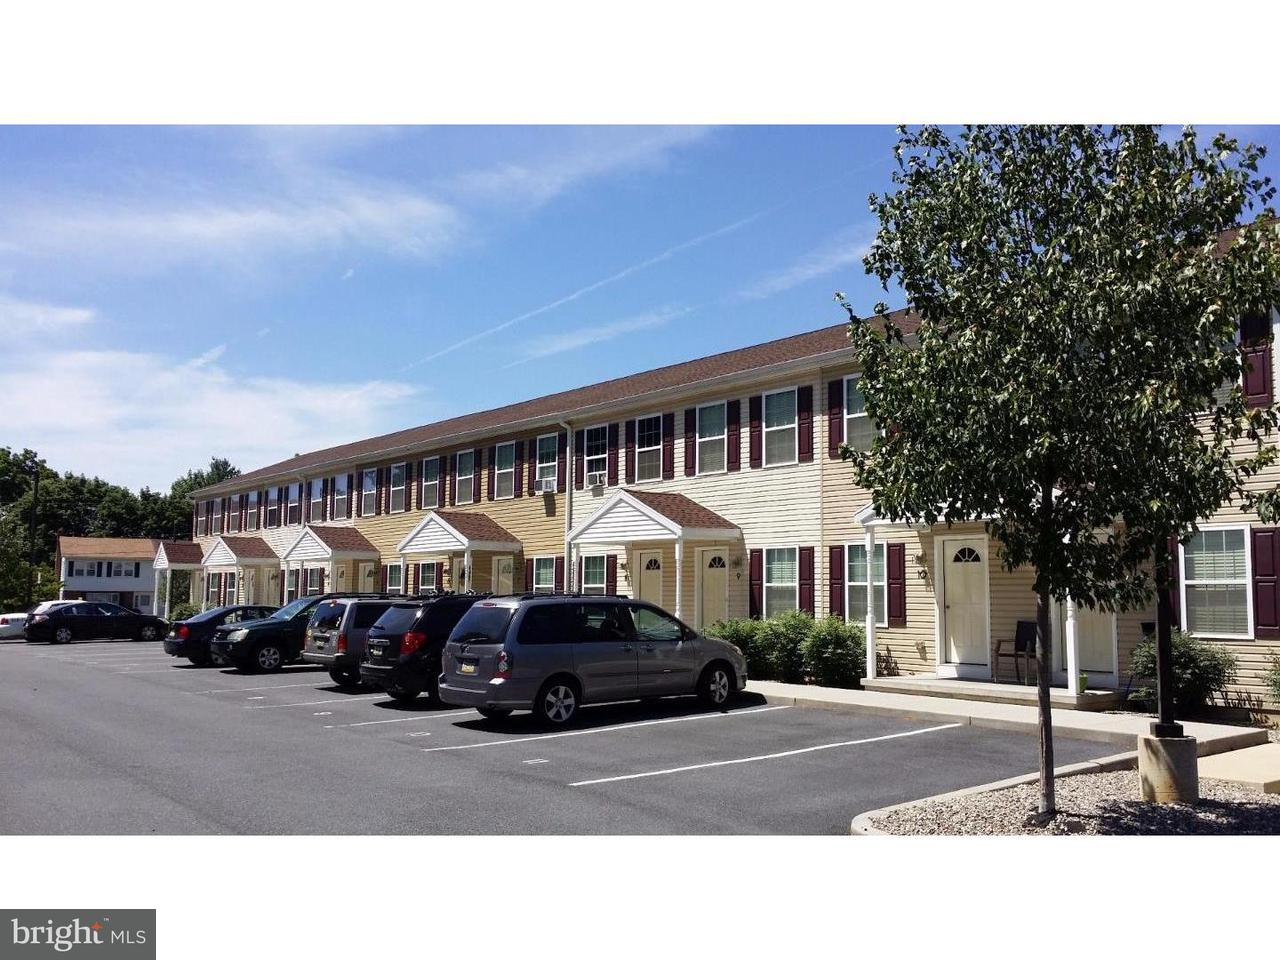 Townhouse for Rent at 75 S REBER ST #18 Wernersville, Pennsylvania 19565 United States